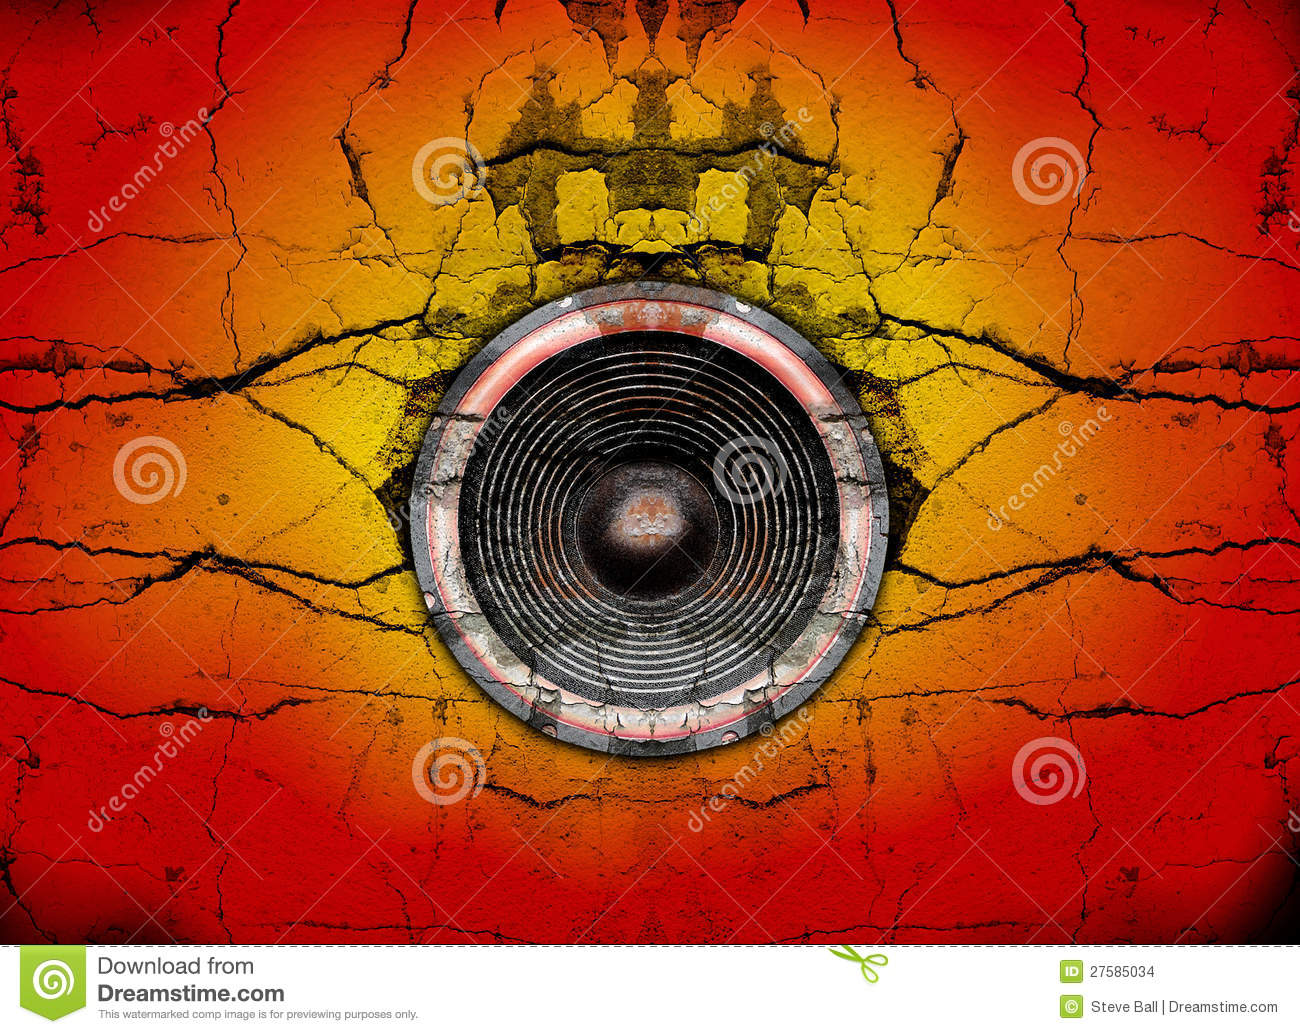 how to fix a cracked speaker